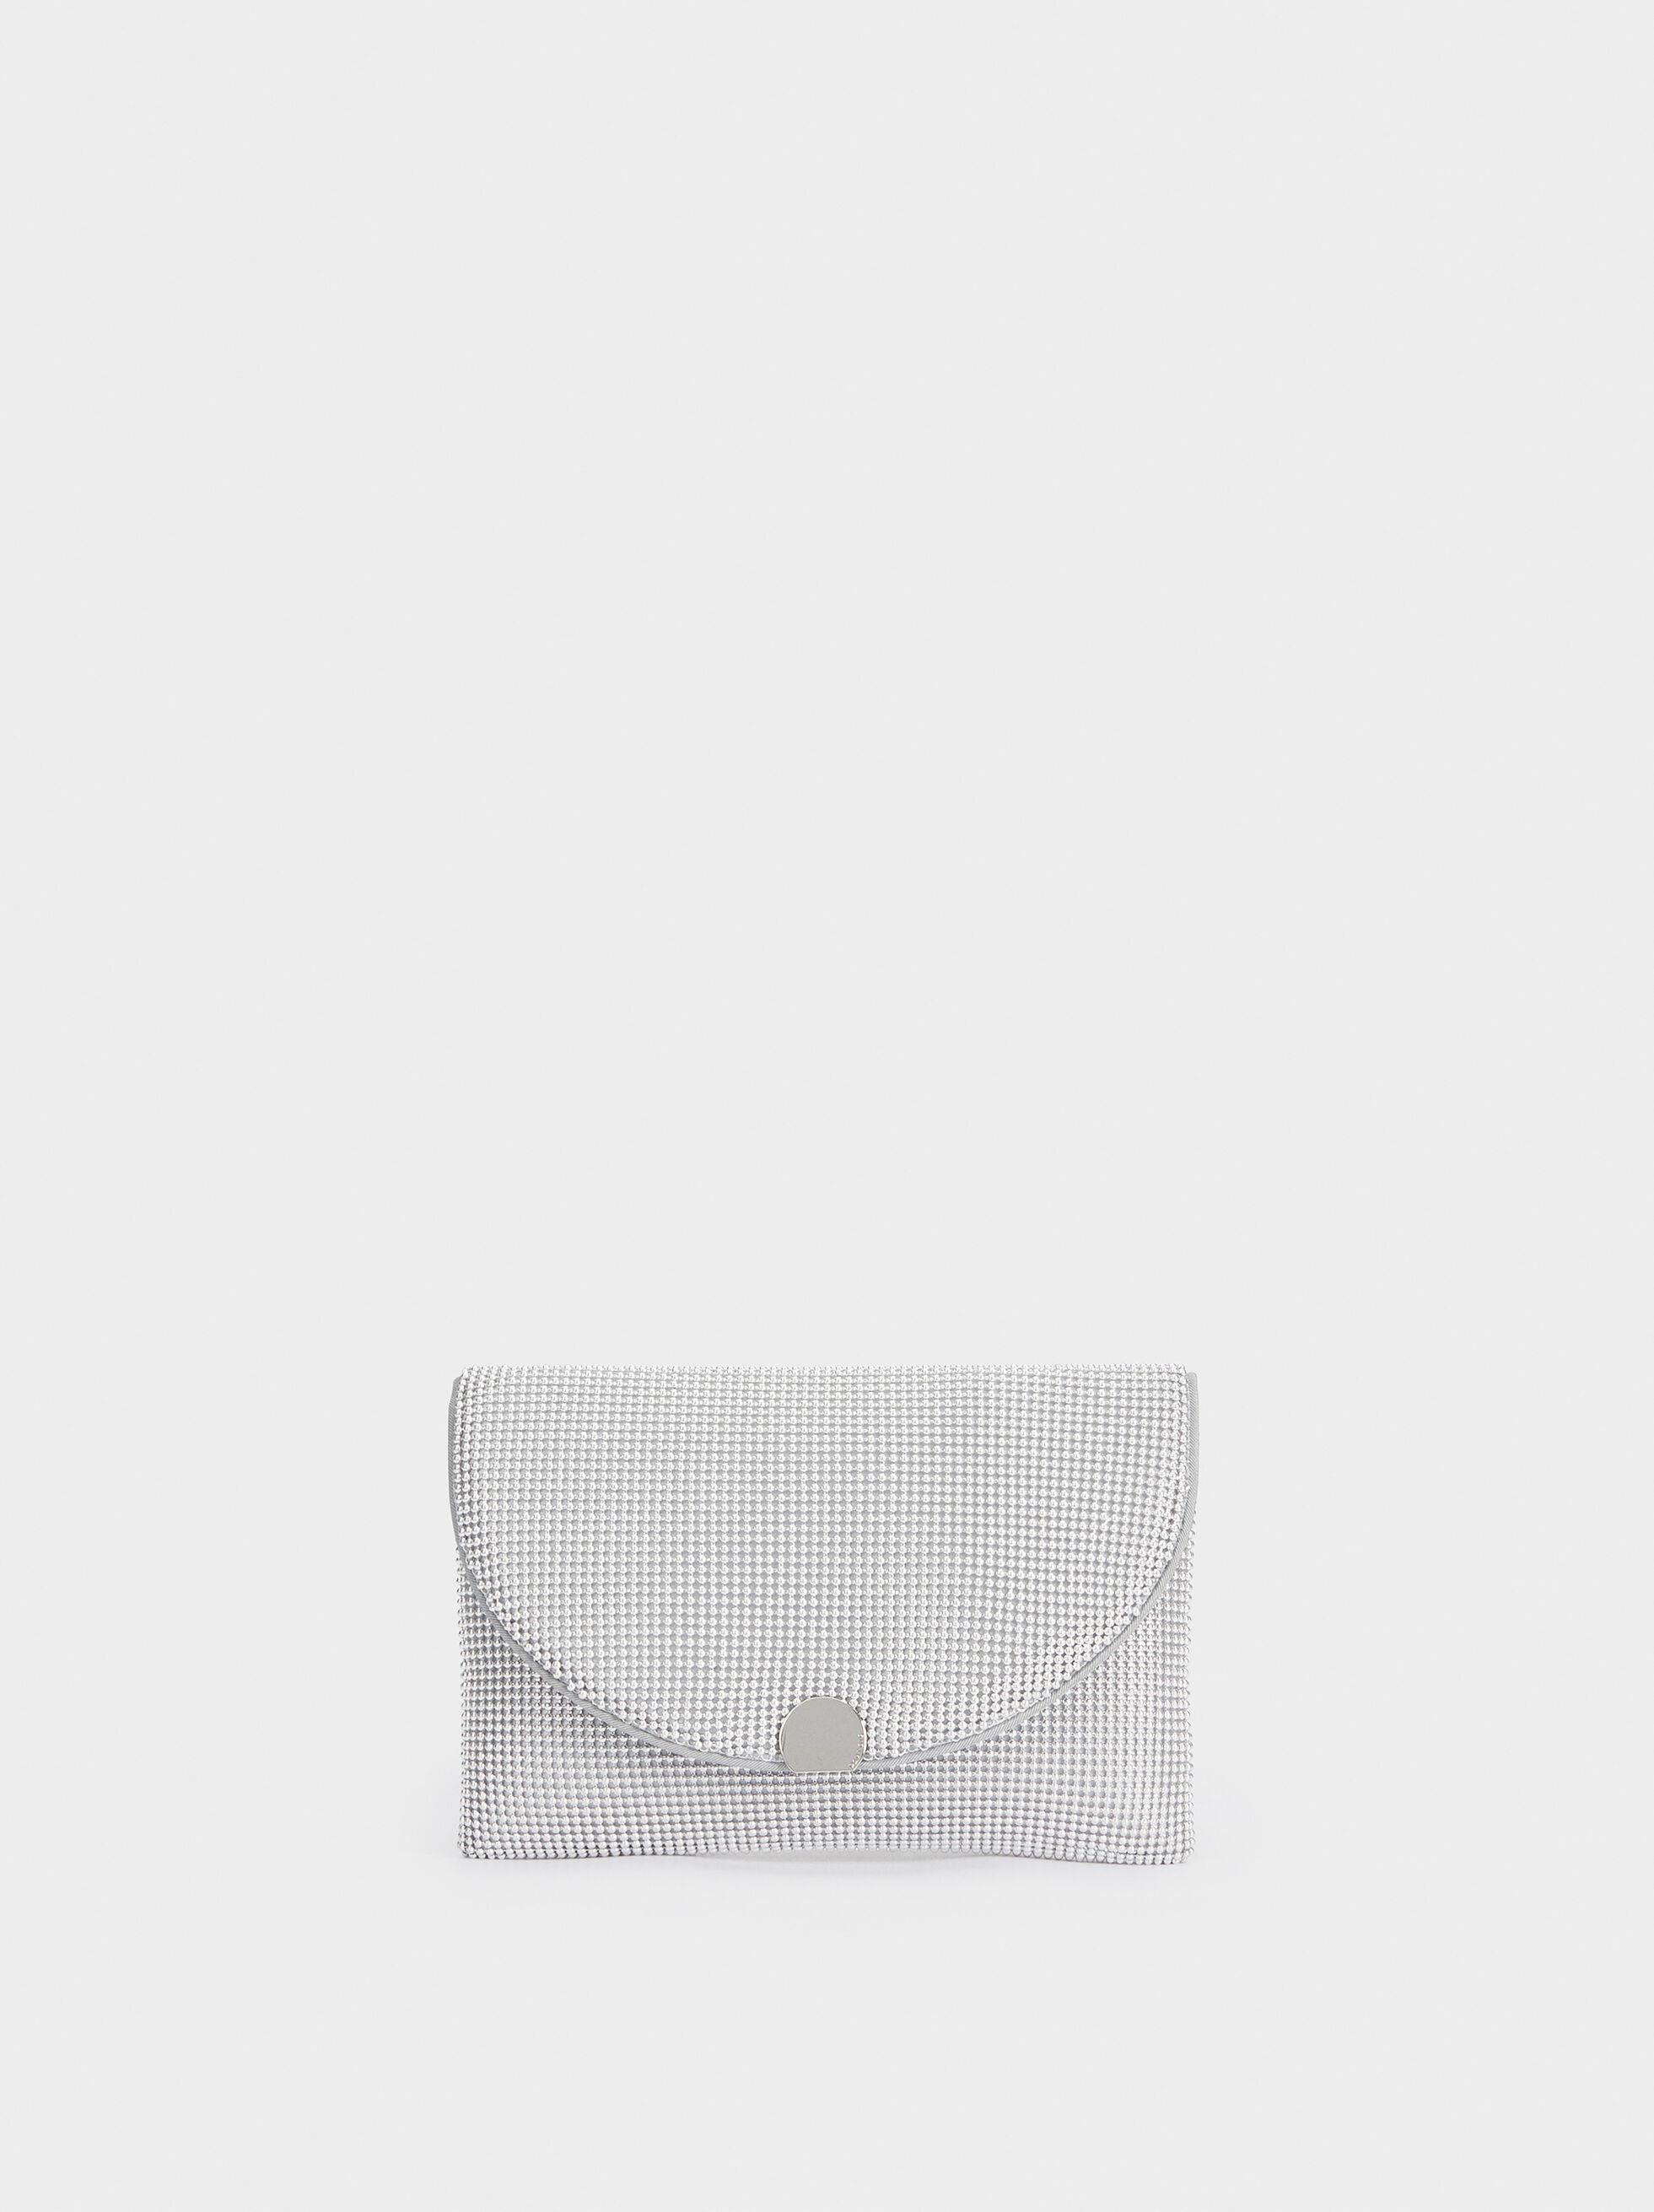 Mesh Party Clutch, , hi-res